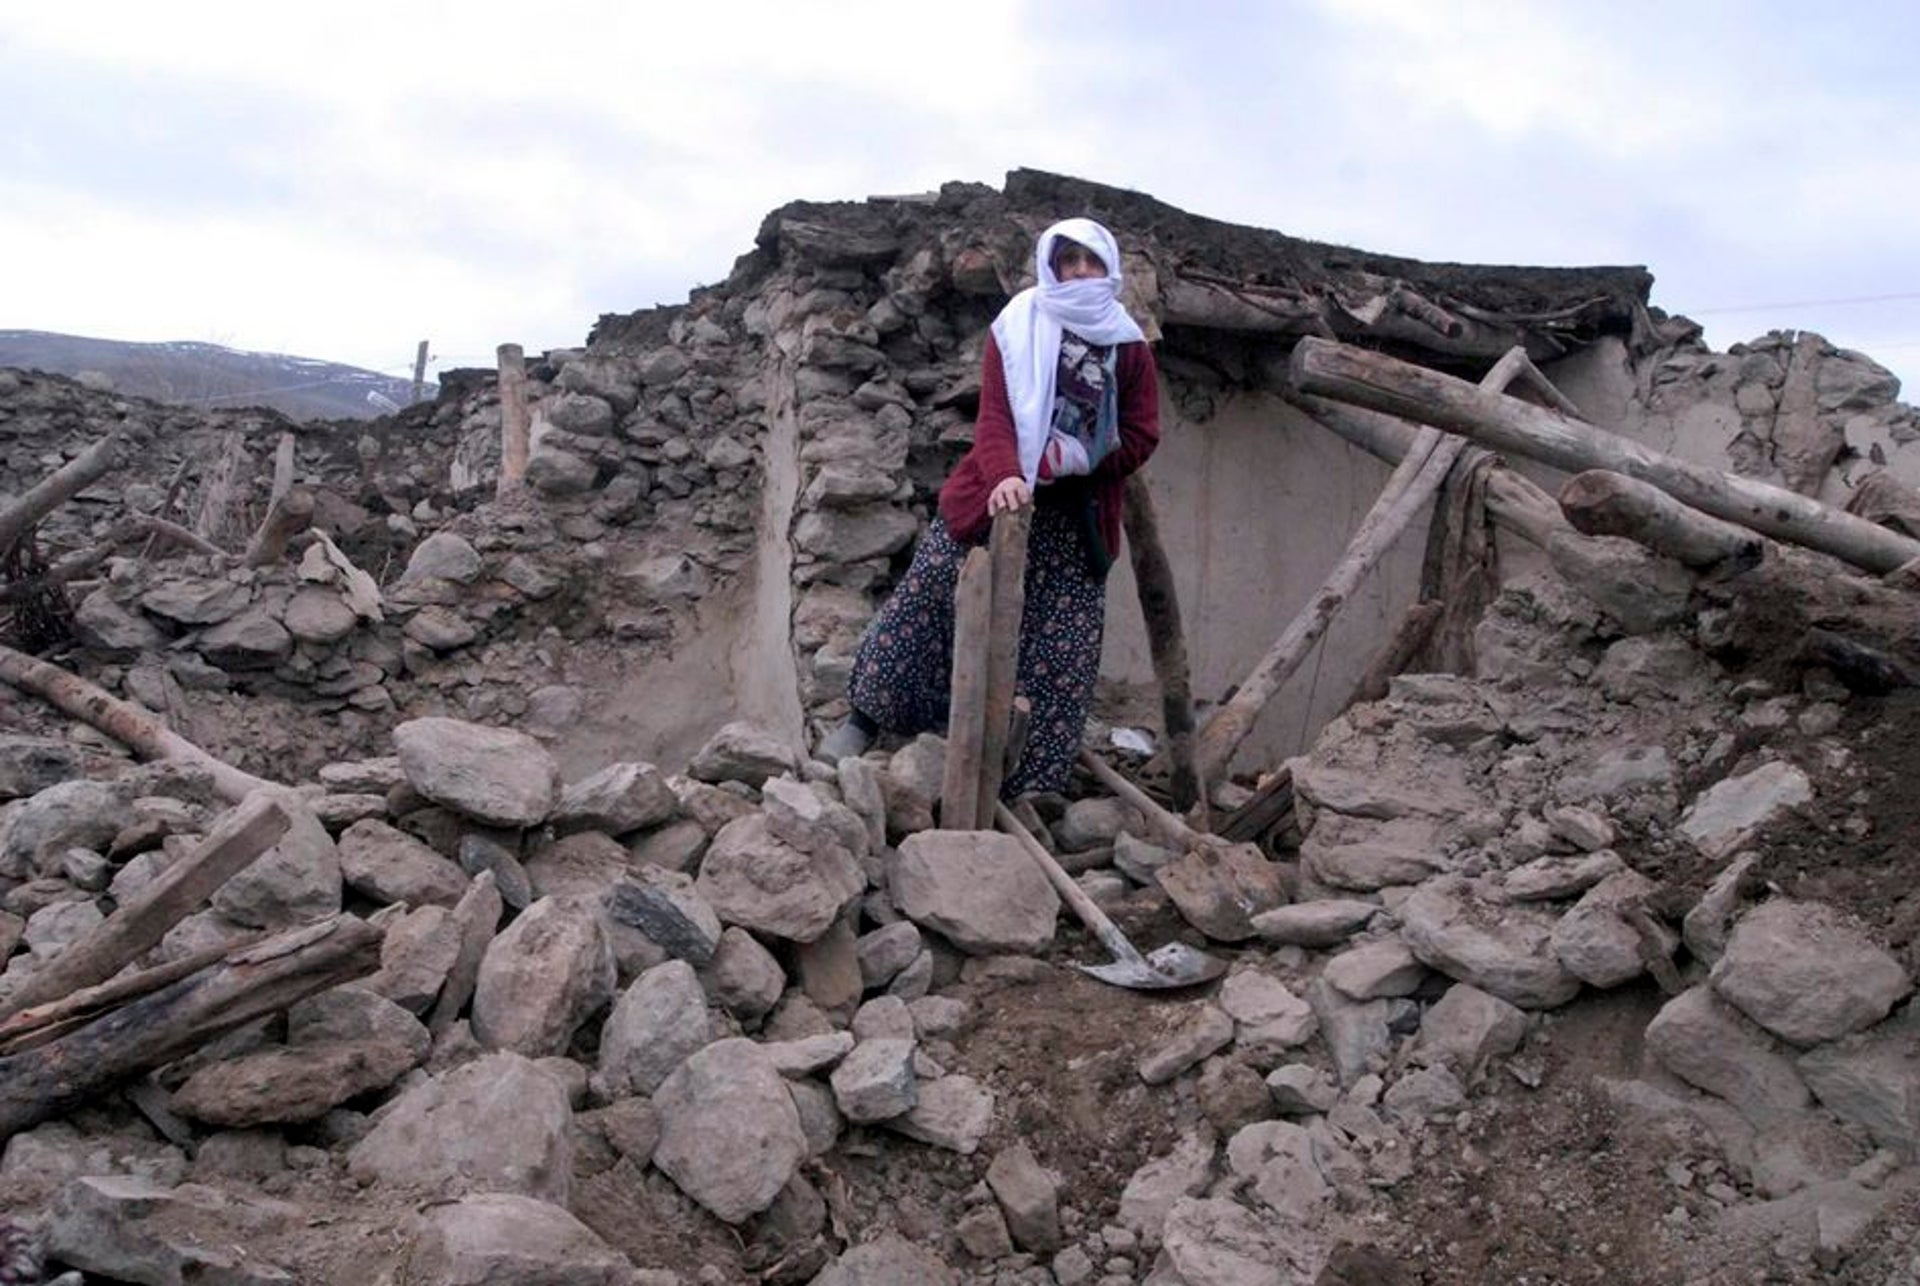 Standing on the ruins of a destroyed house in Okcular, a village in Elazig, Turkey, March 8, 2010: A strong earthquake killed 41 villagers when it struck at 4:32 am local time. The quake had a magnitude of 6.0 and was followed by 30 minor aftershocks.